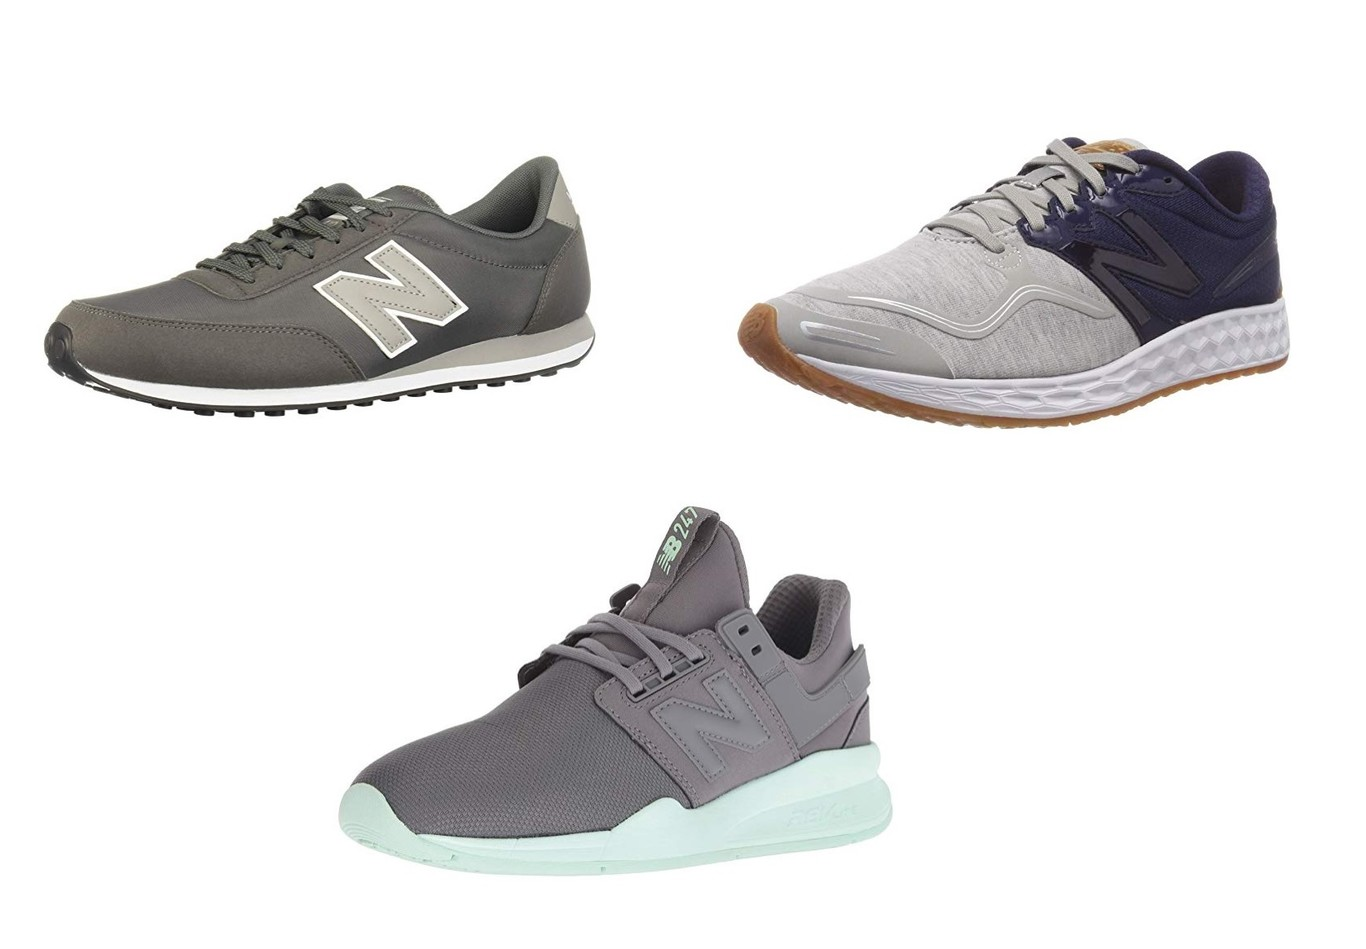 cheap for discount 0ac05 0ce54 Chollos en tallas sueltas de zapatillas New Balance en Amazon